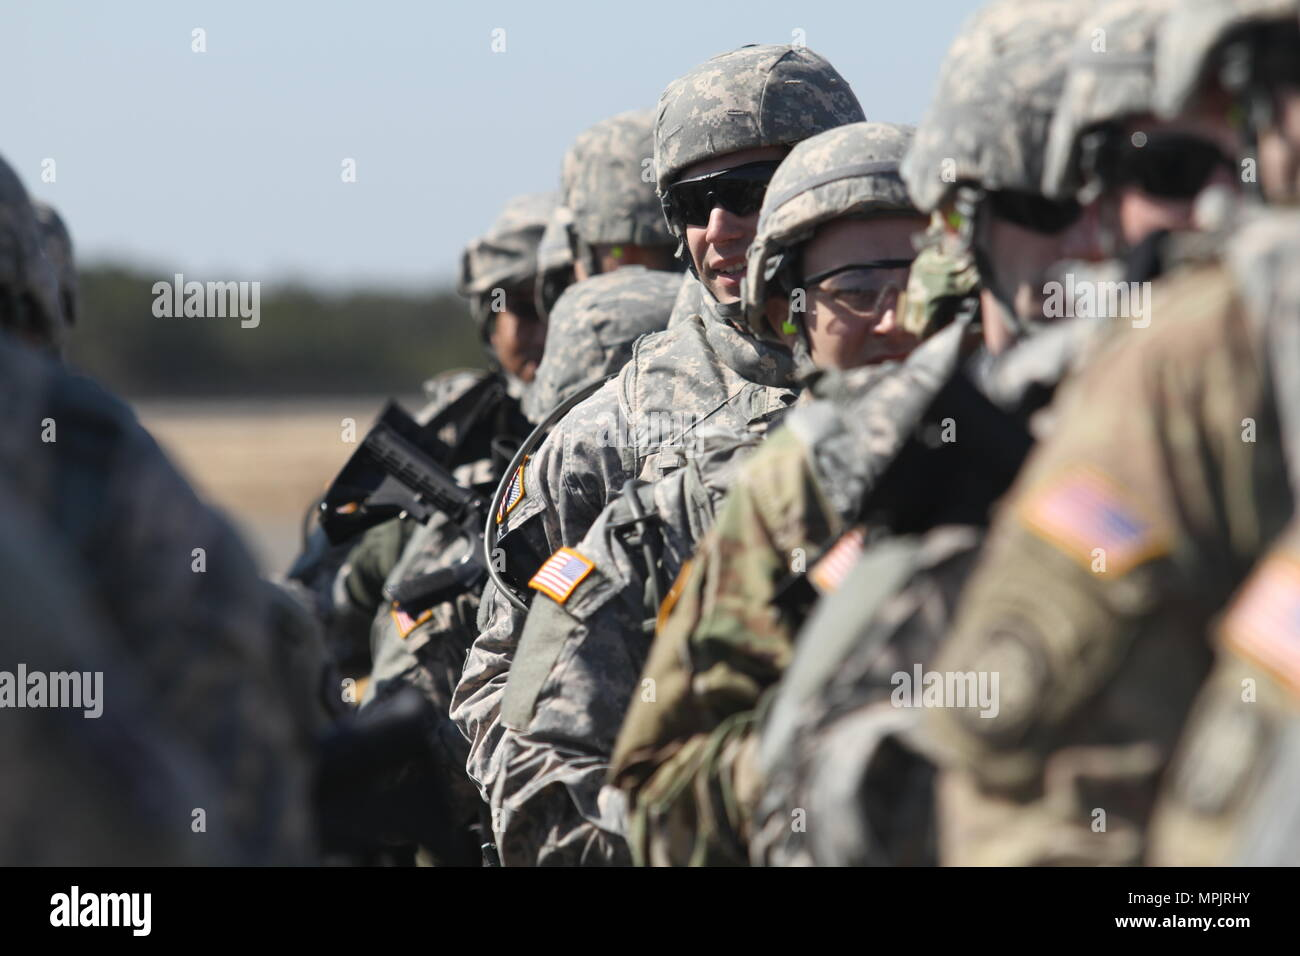 Soldiers from the 340th Military Police Company march forward on the